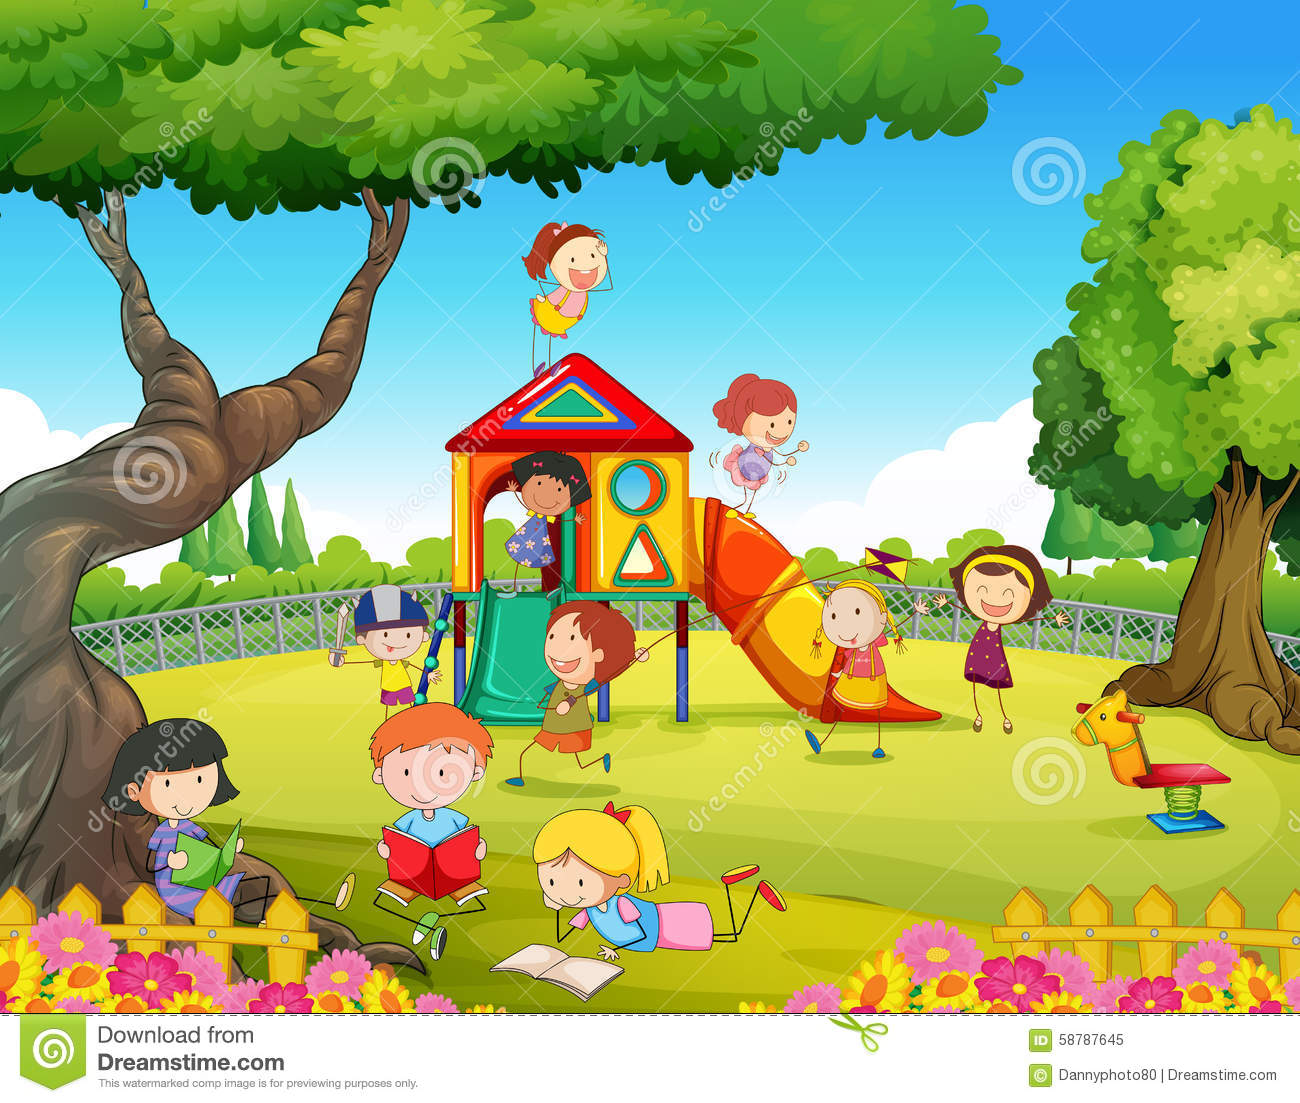 Children playing on playground clipart 4 » Clipart Station.